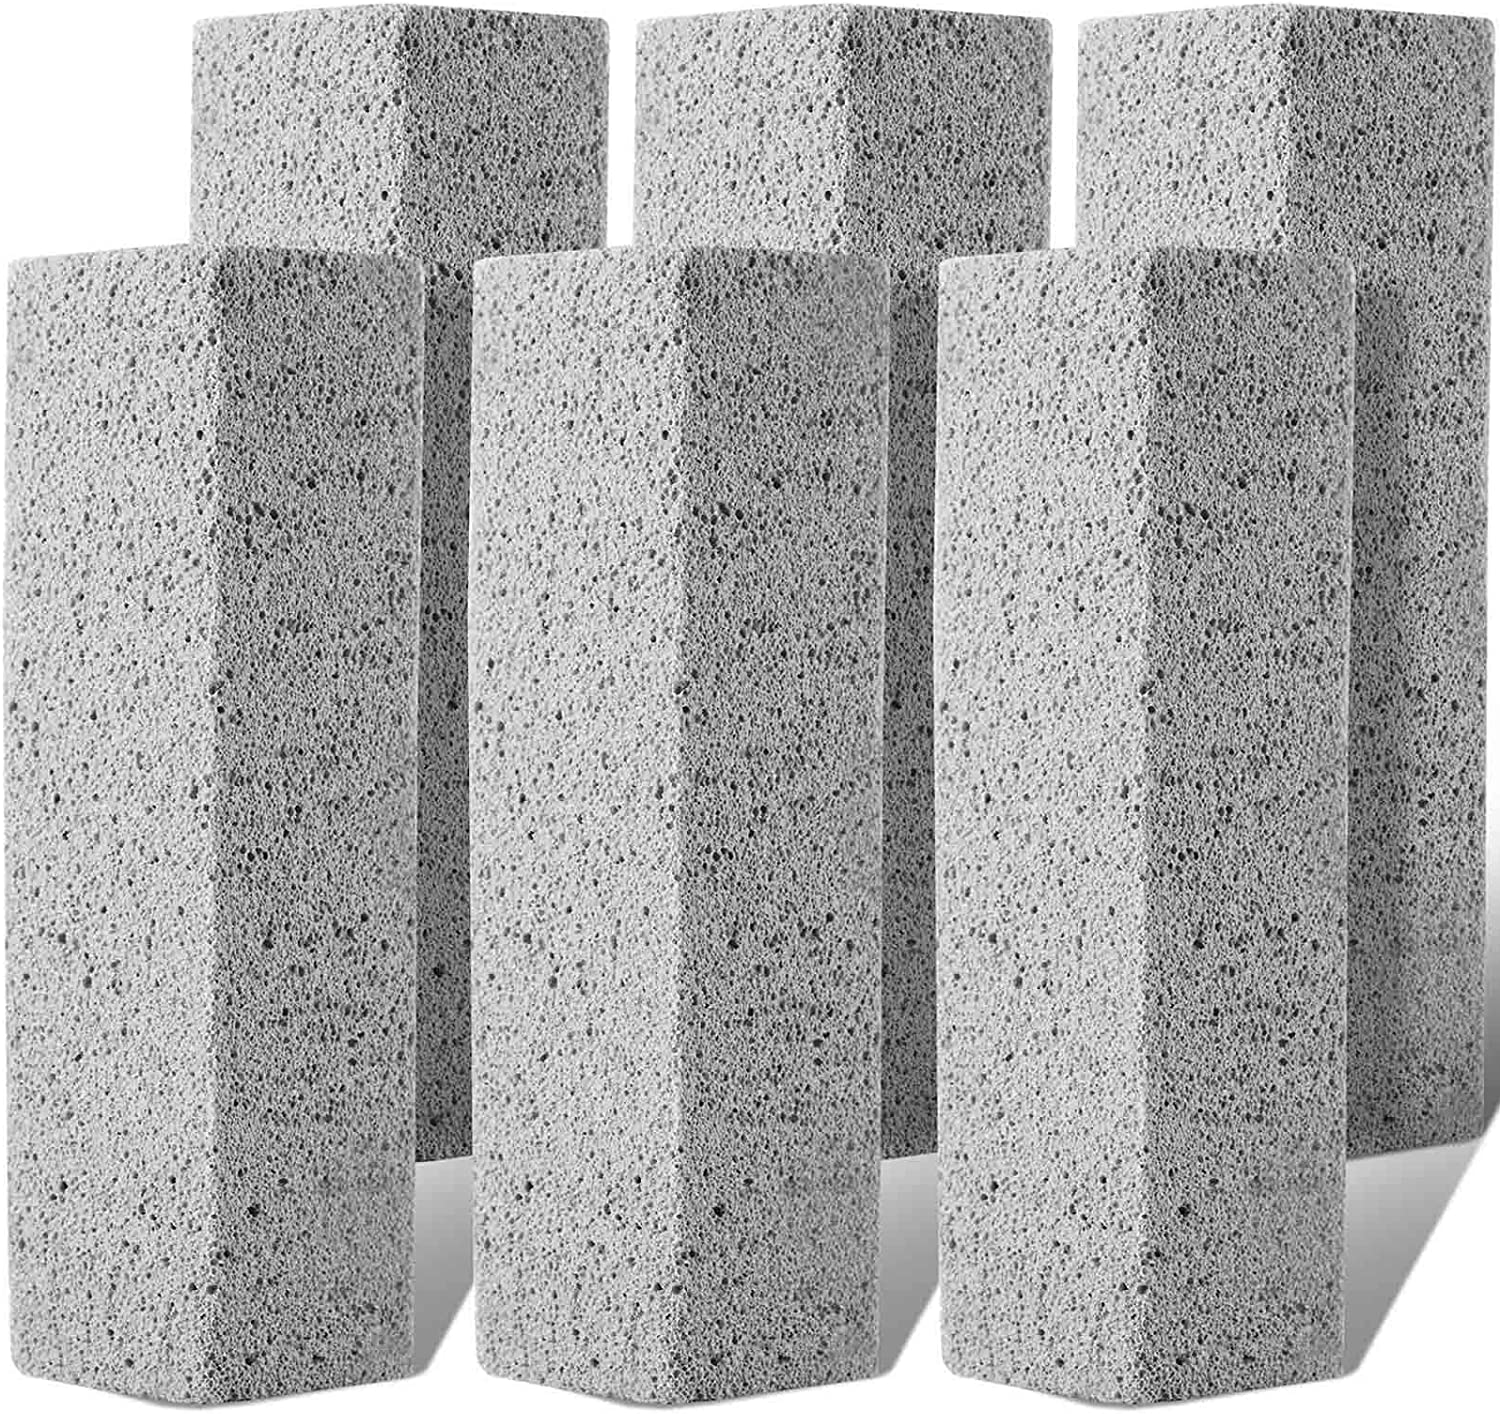 Pumice Stone for Toilet Cleaning Bowl Stick, Refresh Toilet within 1 Minute, 6 New Ways to Use a Pumice Stone, Remove Water Rings Stains on Toilets Bowls, Bathtubs, Pool Shower Tiles, 6 Count : Health & Household